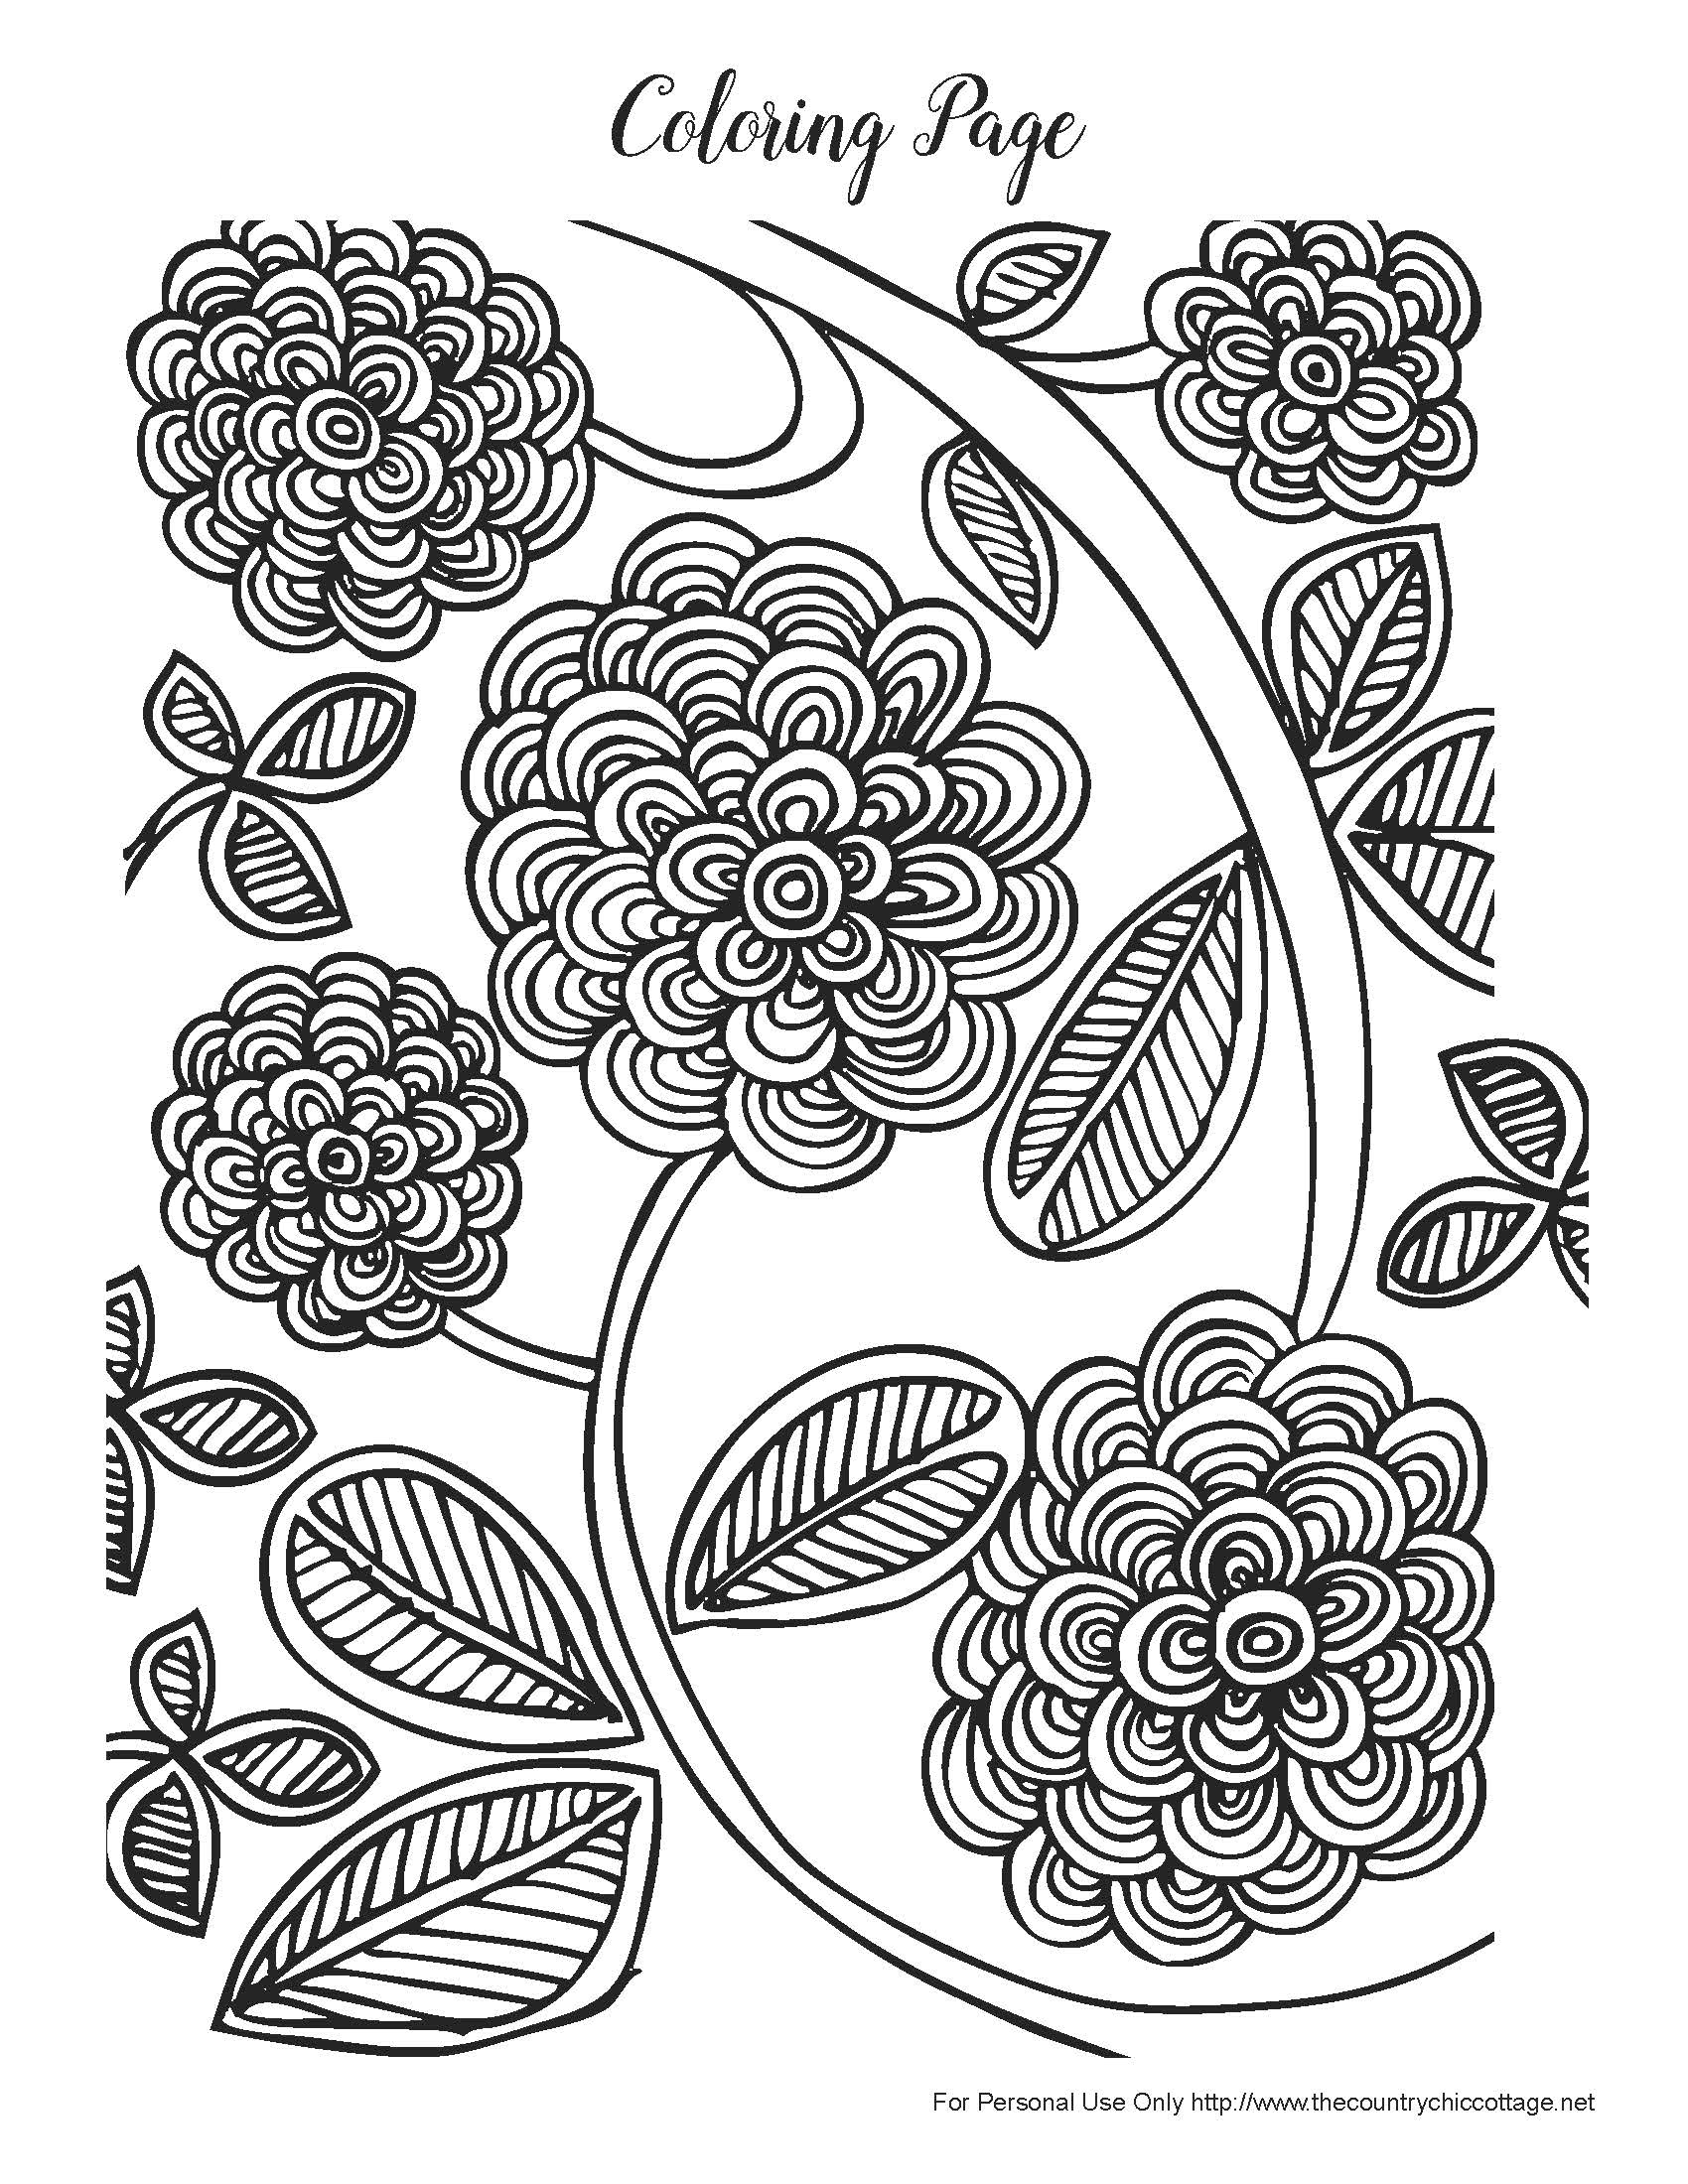 It's just a graphic of Sizzling Printable Coloring Pages for Adults Flowers